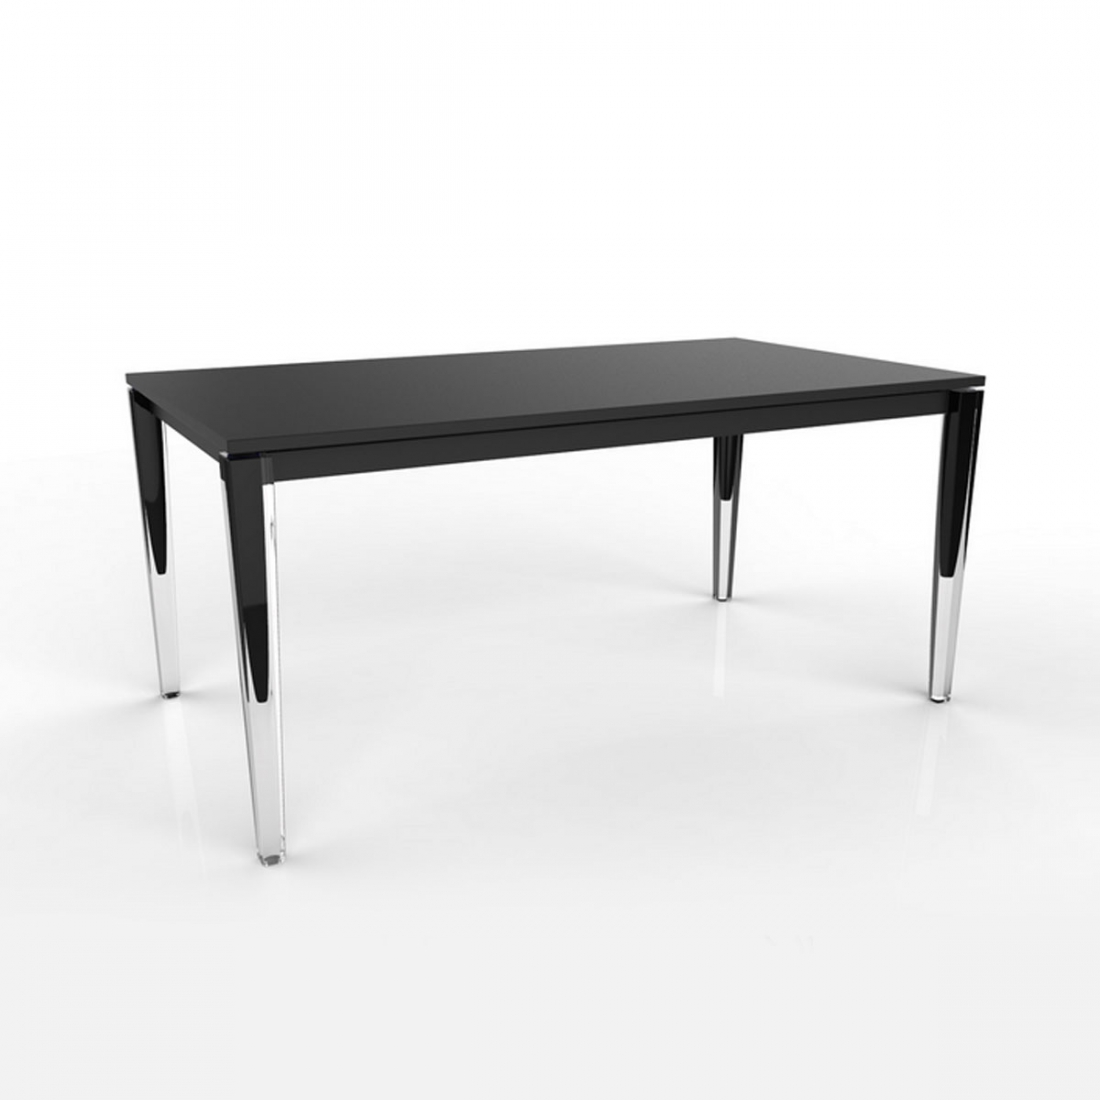 Table avec rallonge design magis zendart design for Table exterieur avec rallonge